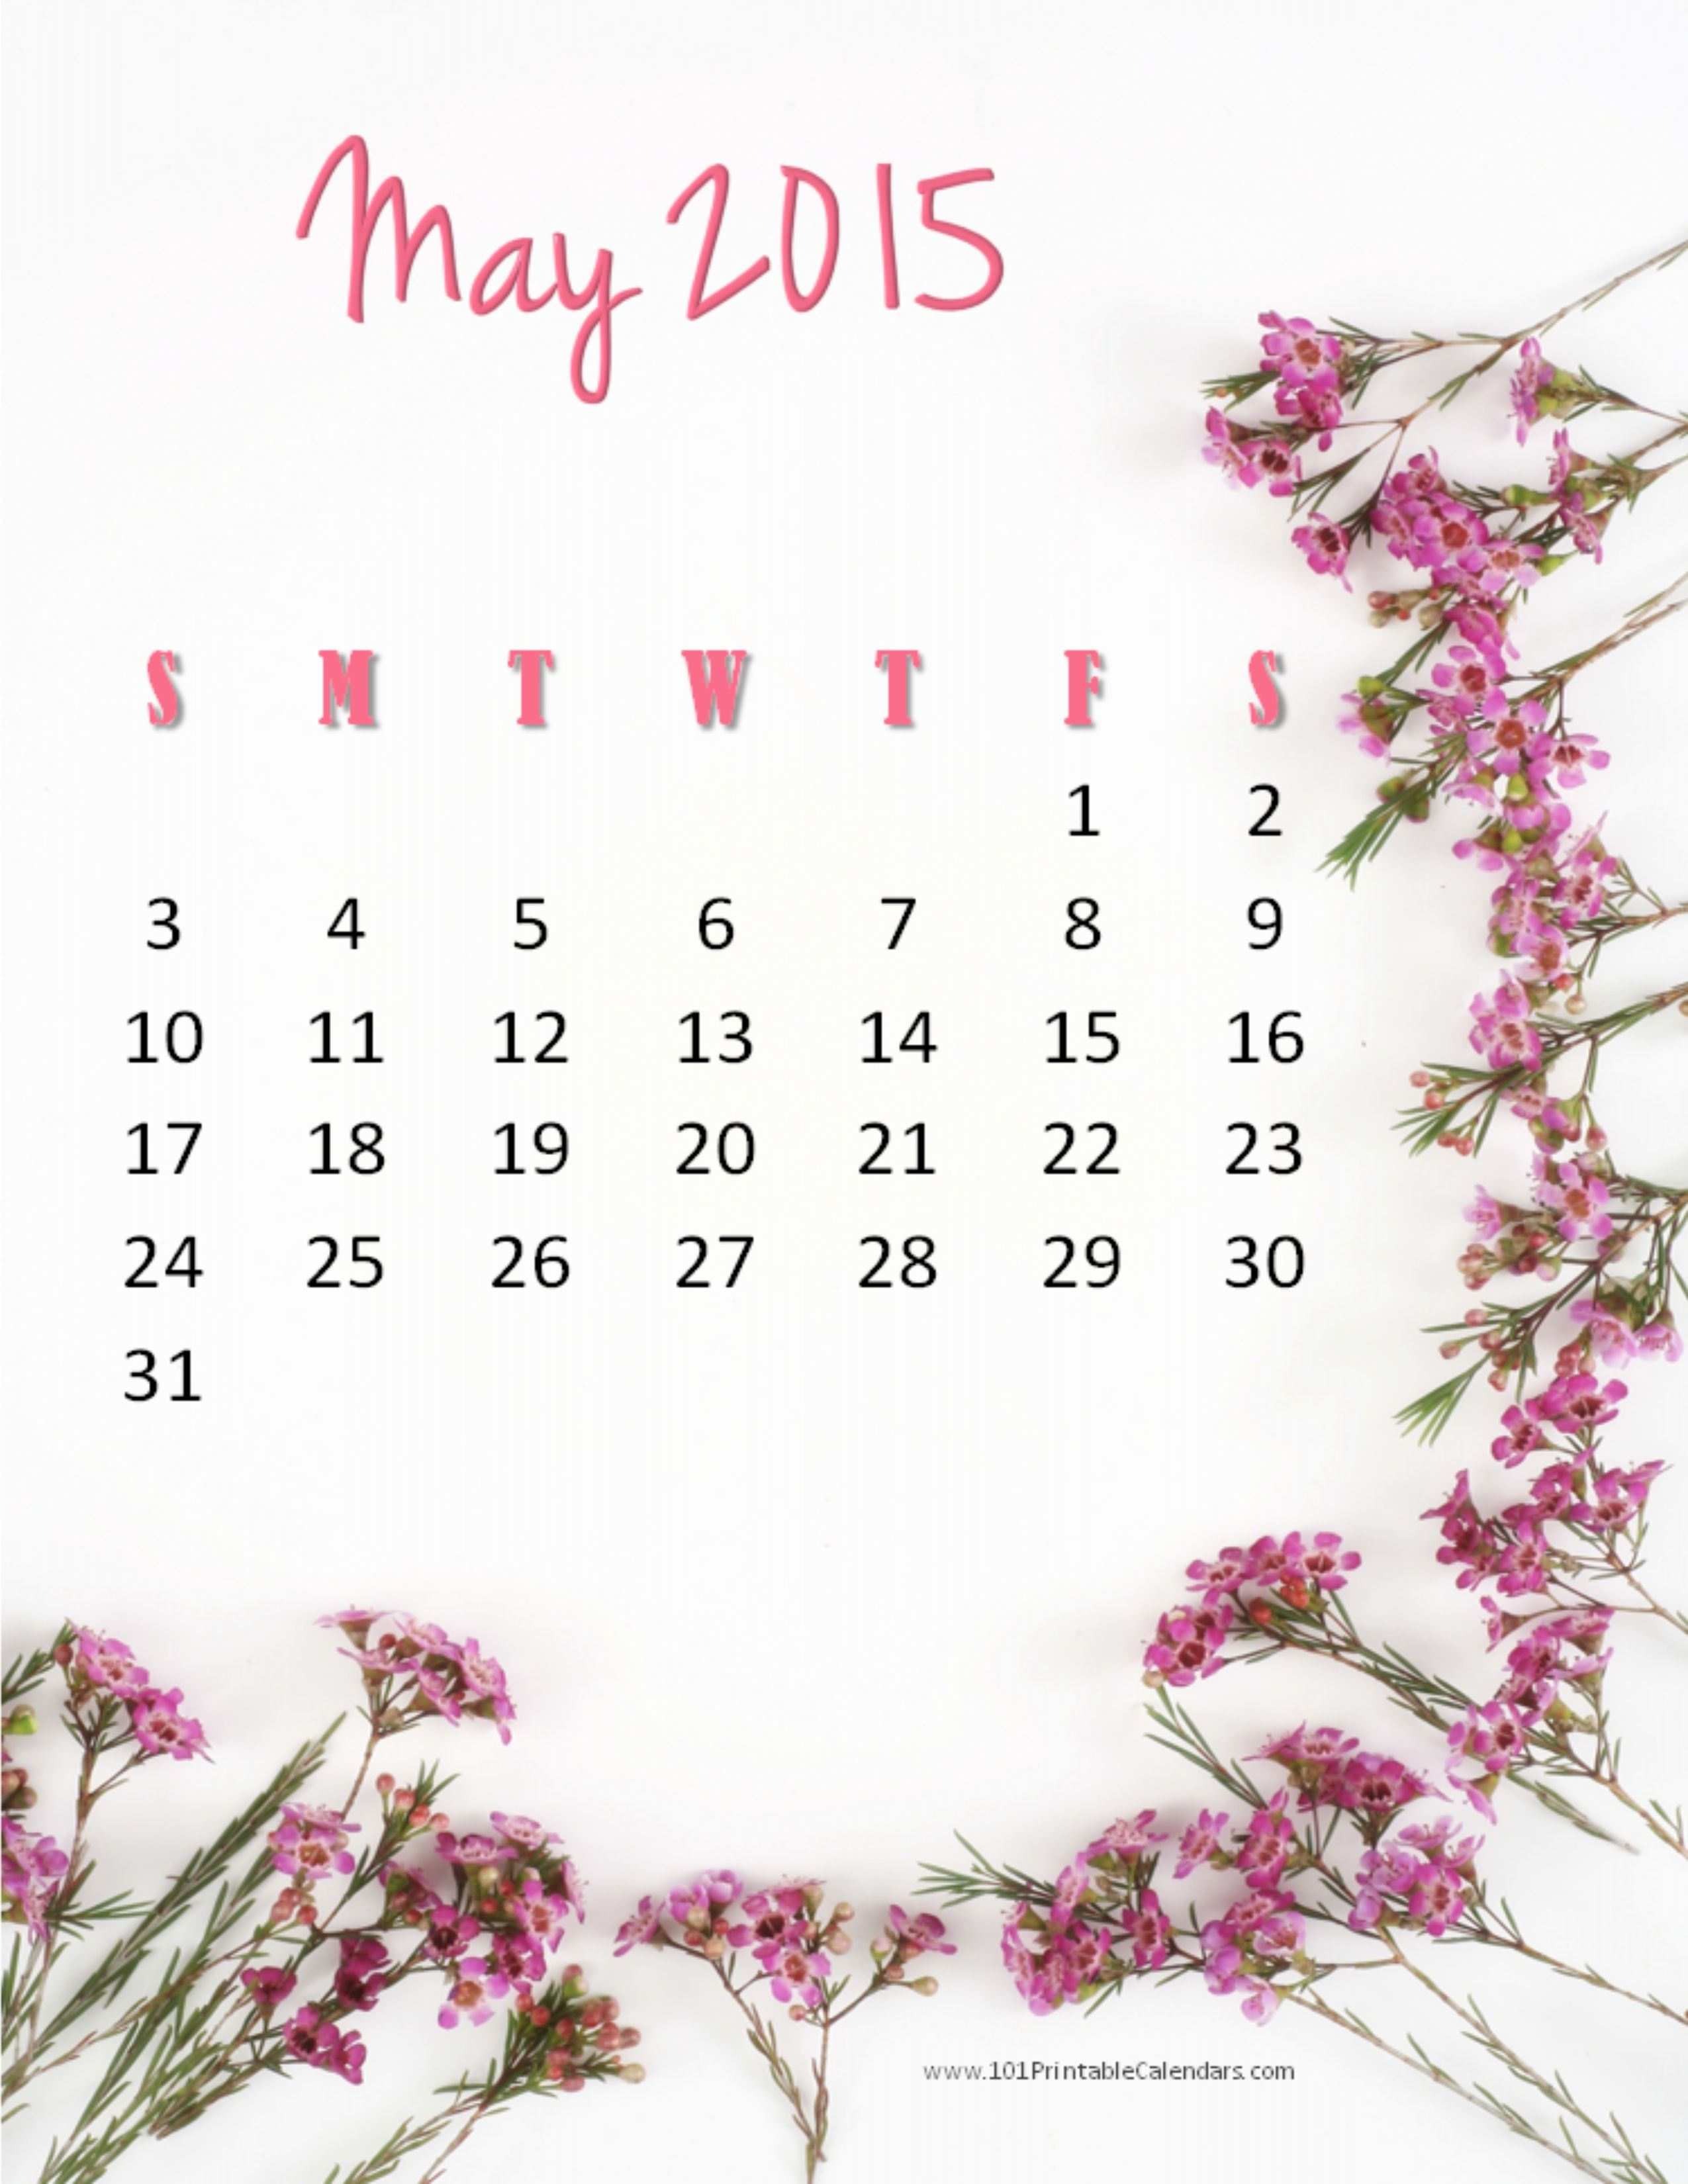 May 2015 Calendar Image Printable Pdf Template Excel Doc